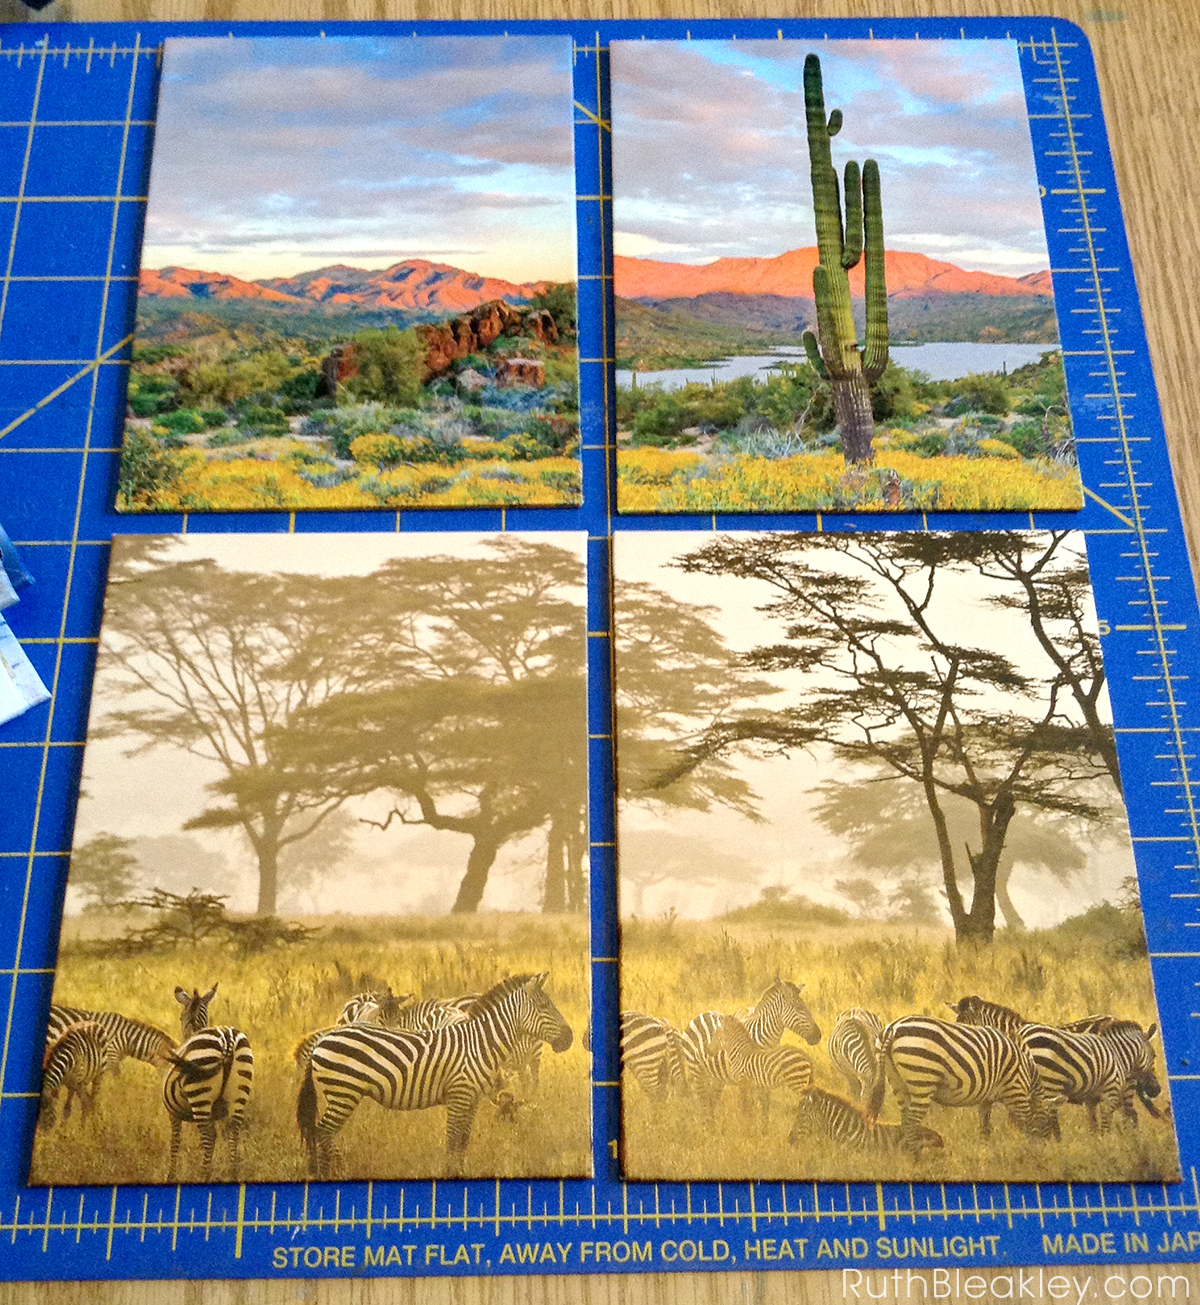 Desert and Savannah book covers made by bookbinder Ruth Bleakley